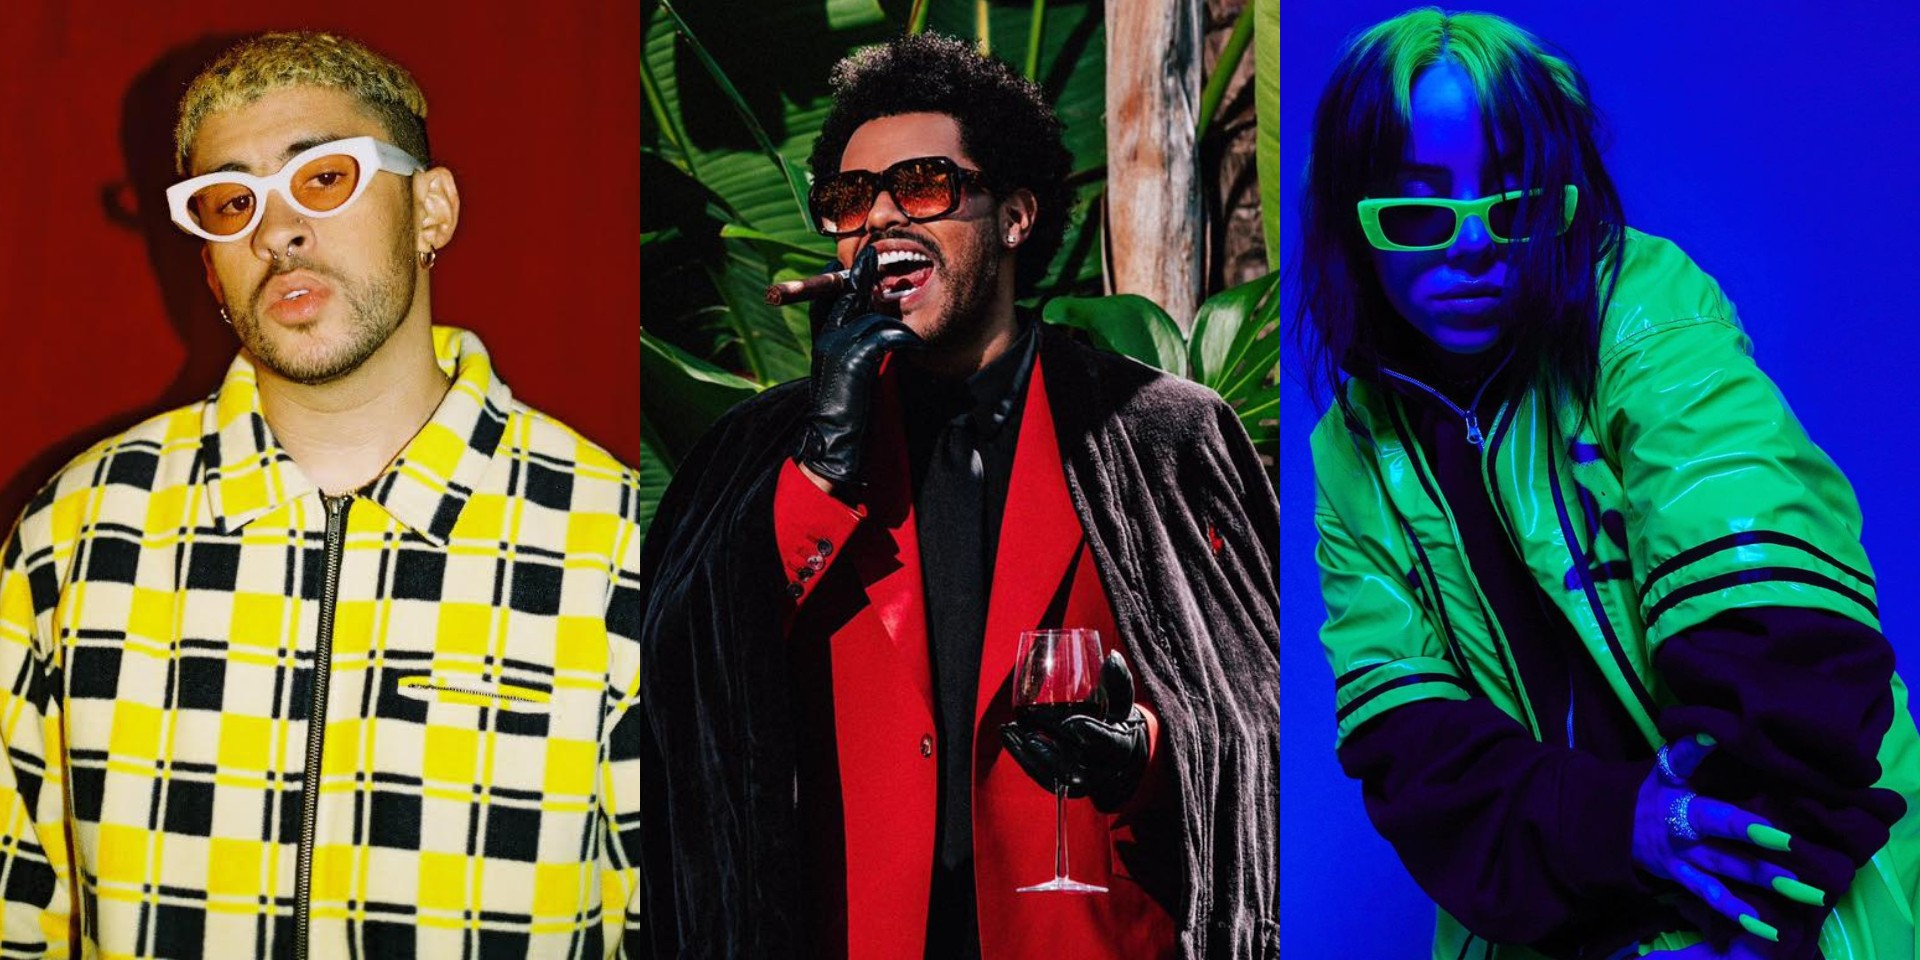 Spotify rolls out Wrapped 2020 with most streamed songs, albums, artists, and more, Bad Bunny, The Weeknd, Billie Eilish, and more come out on top